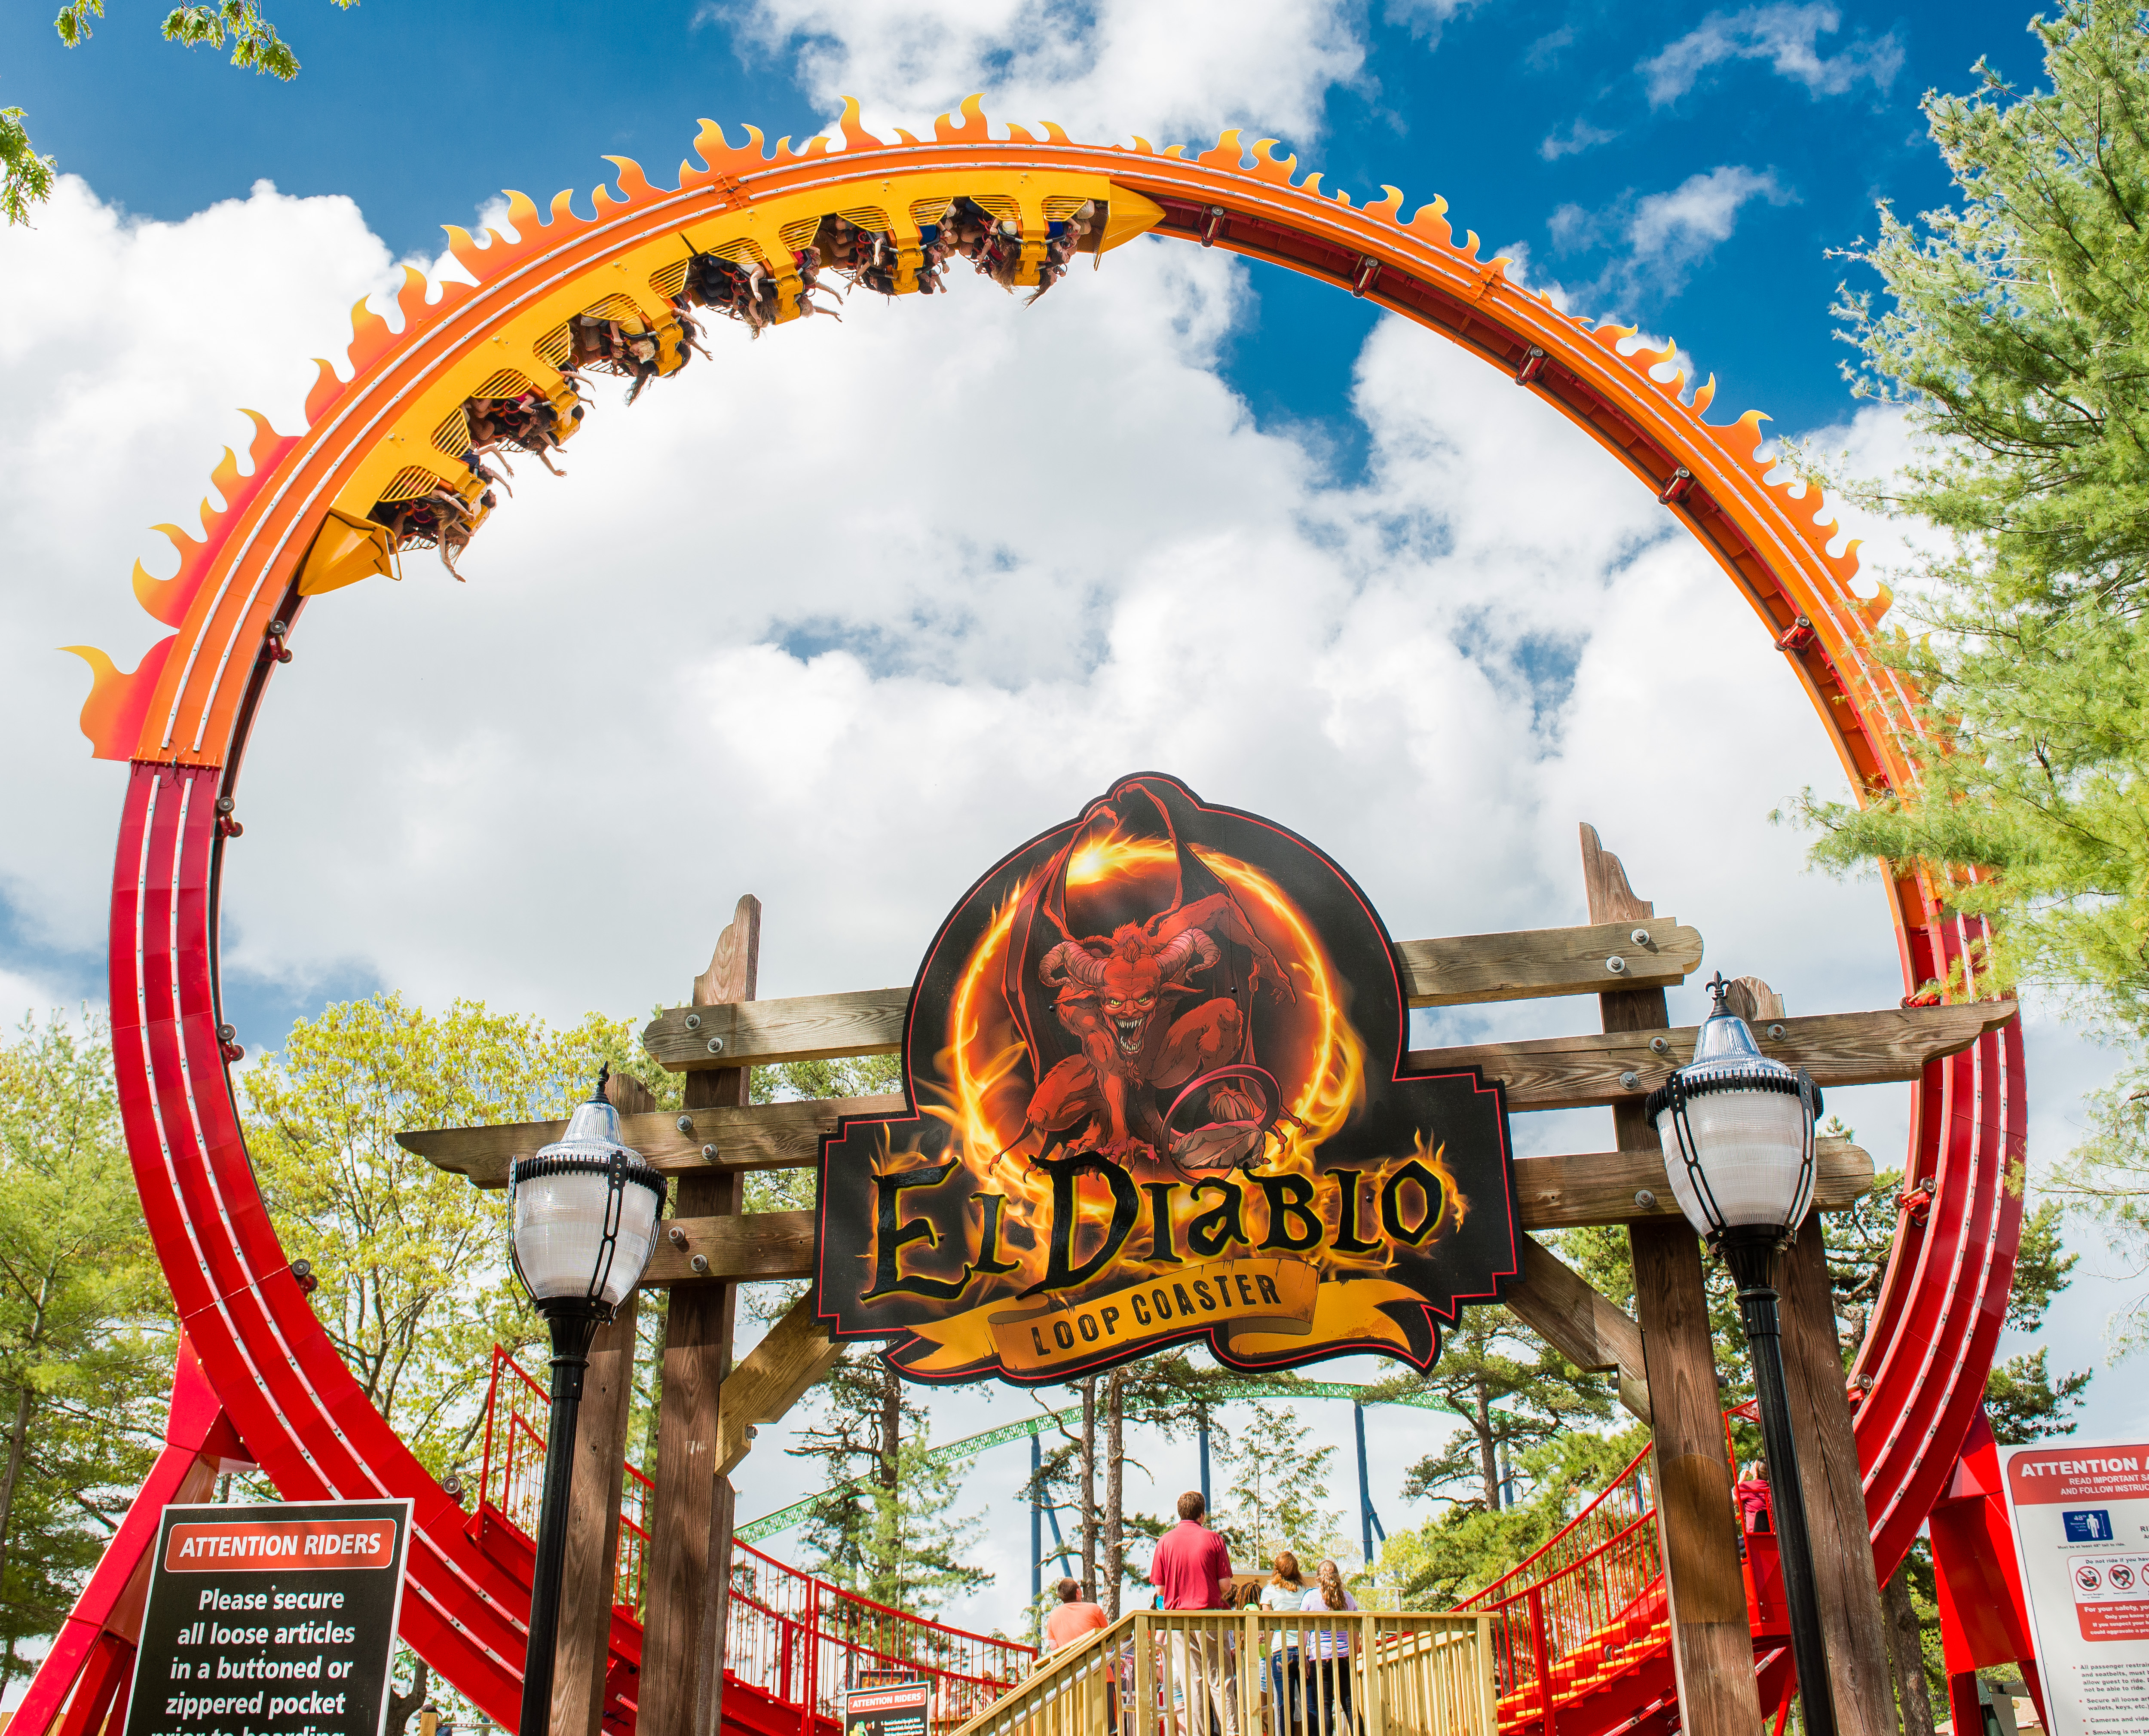 · Your employe, Zack, who worked at the joker the time I went was very nice and kind. He made sure that I was safe. I asked him about the ride and gave all good reviews which were true.